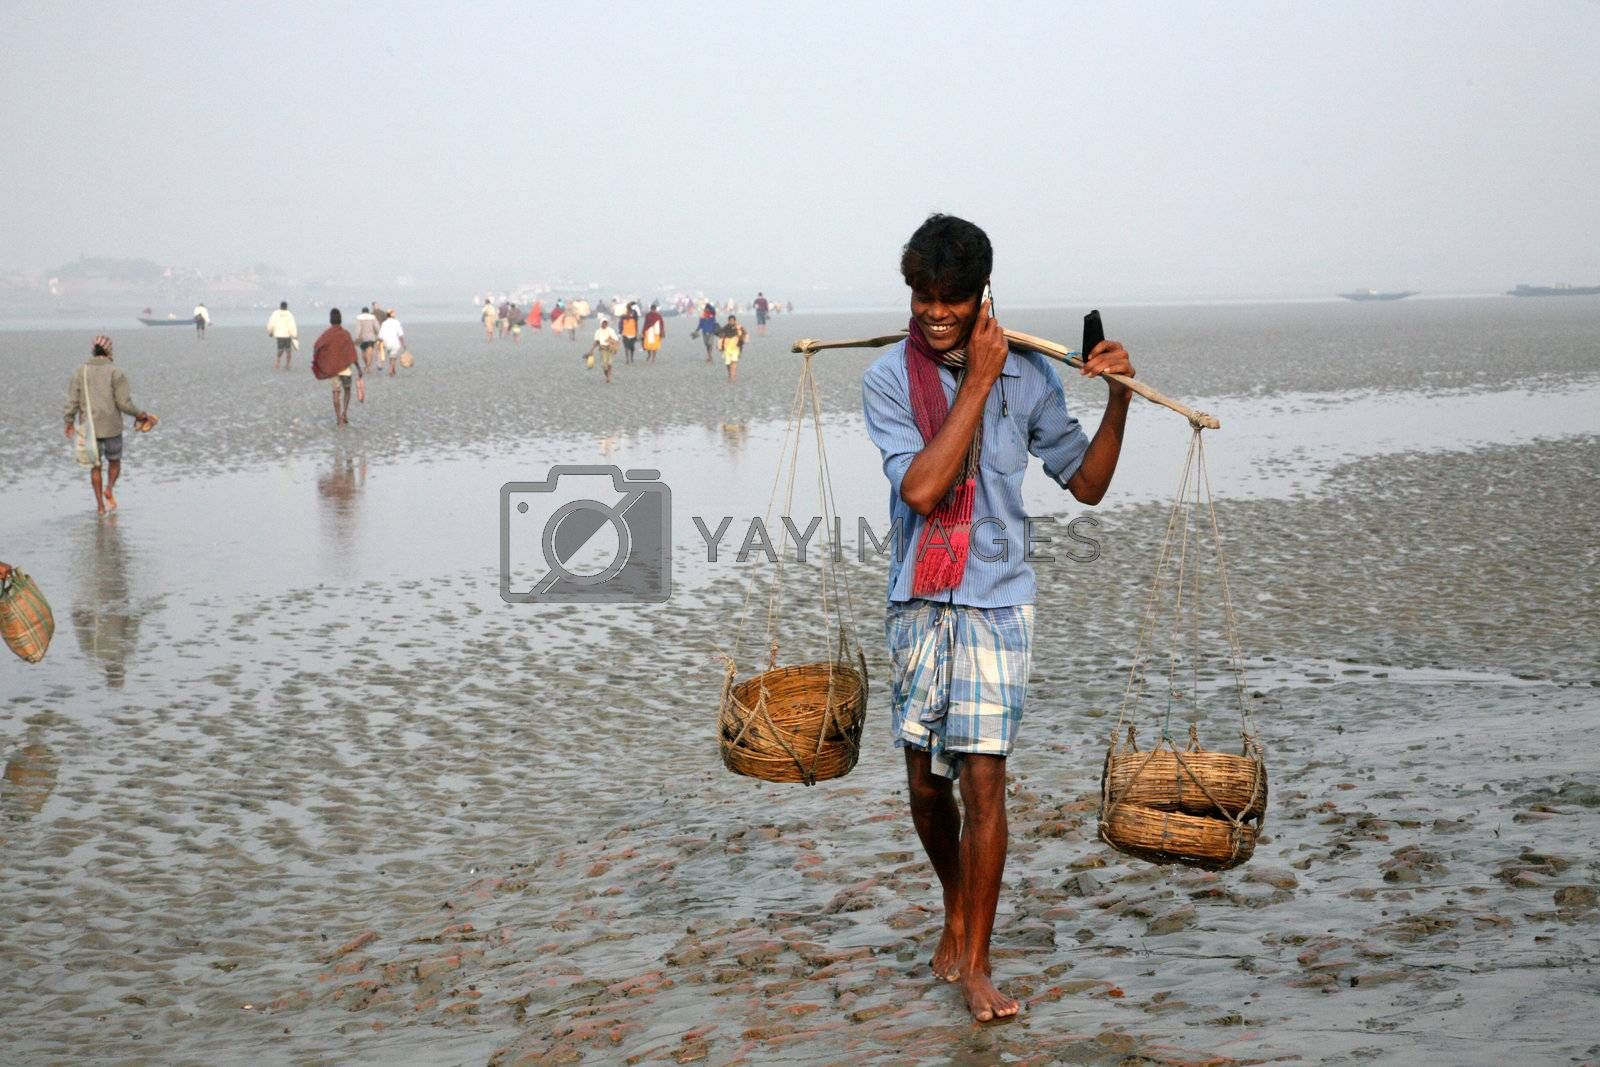 SUNDARBANDS, WEST BENGAL, INDIA - JANUARY 17: The signal of mobile phone covers and most remote parts of the Sundarbans jungles, West Bengal, India on January 17, 2009.